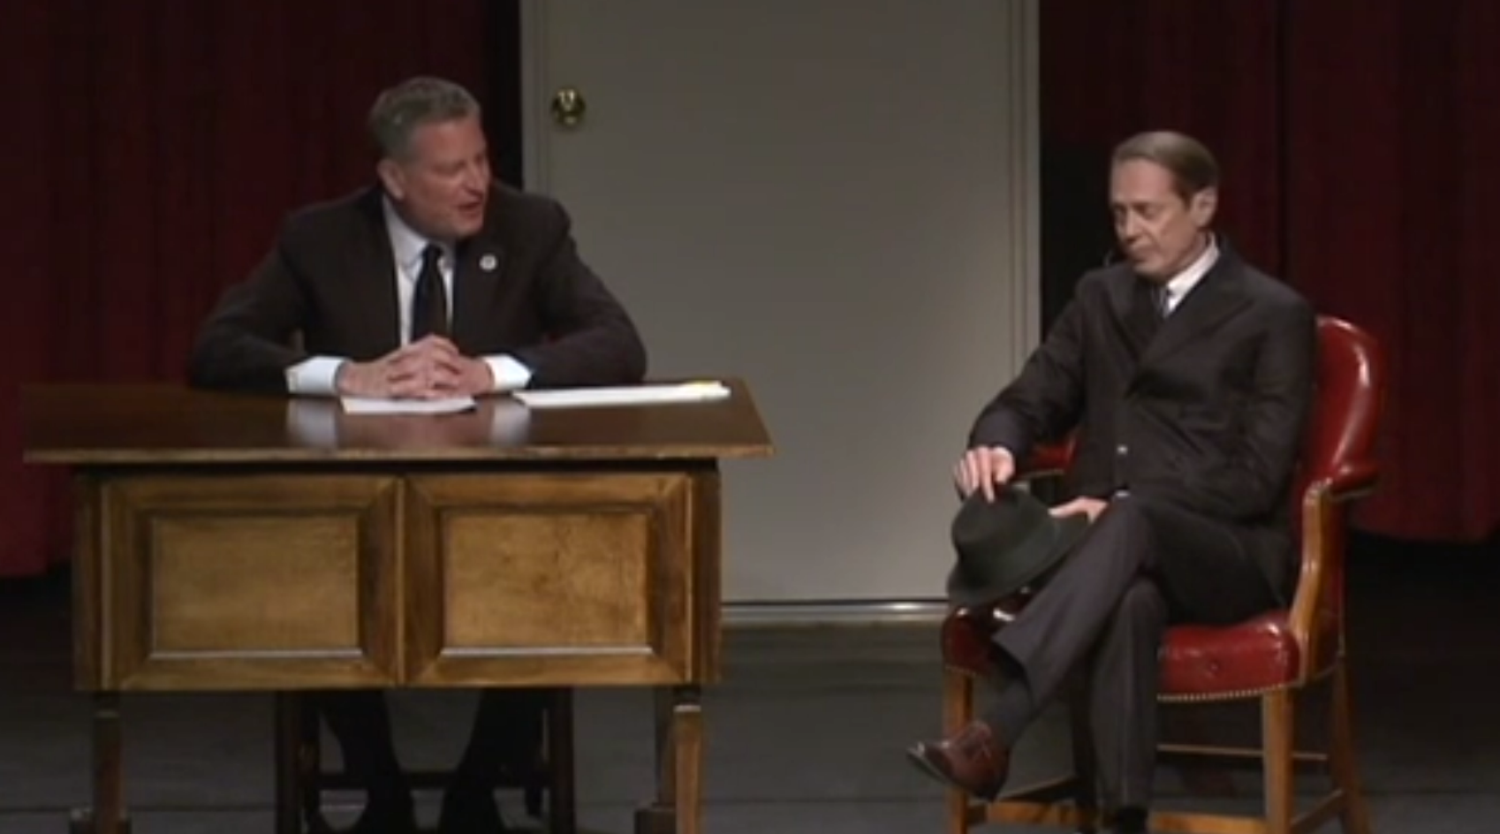 Bill-De-Blasio-and-Steve-Buscemi